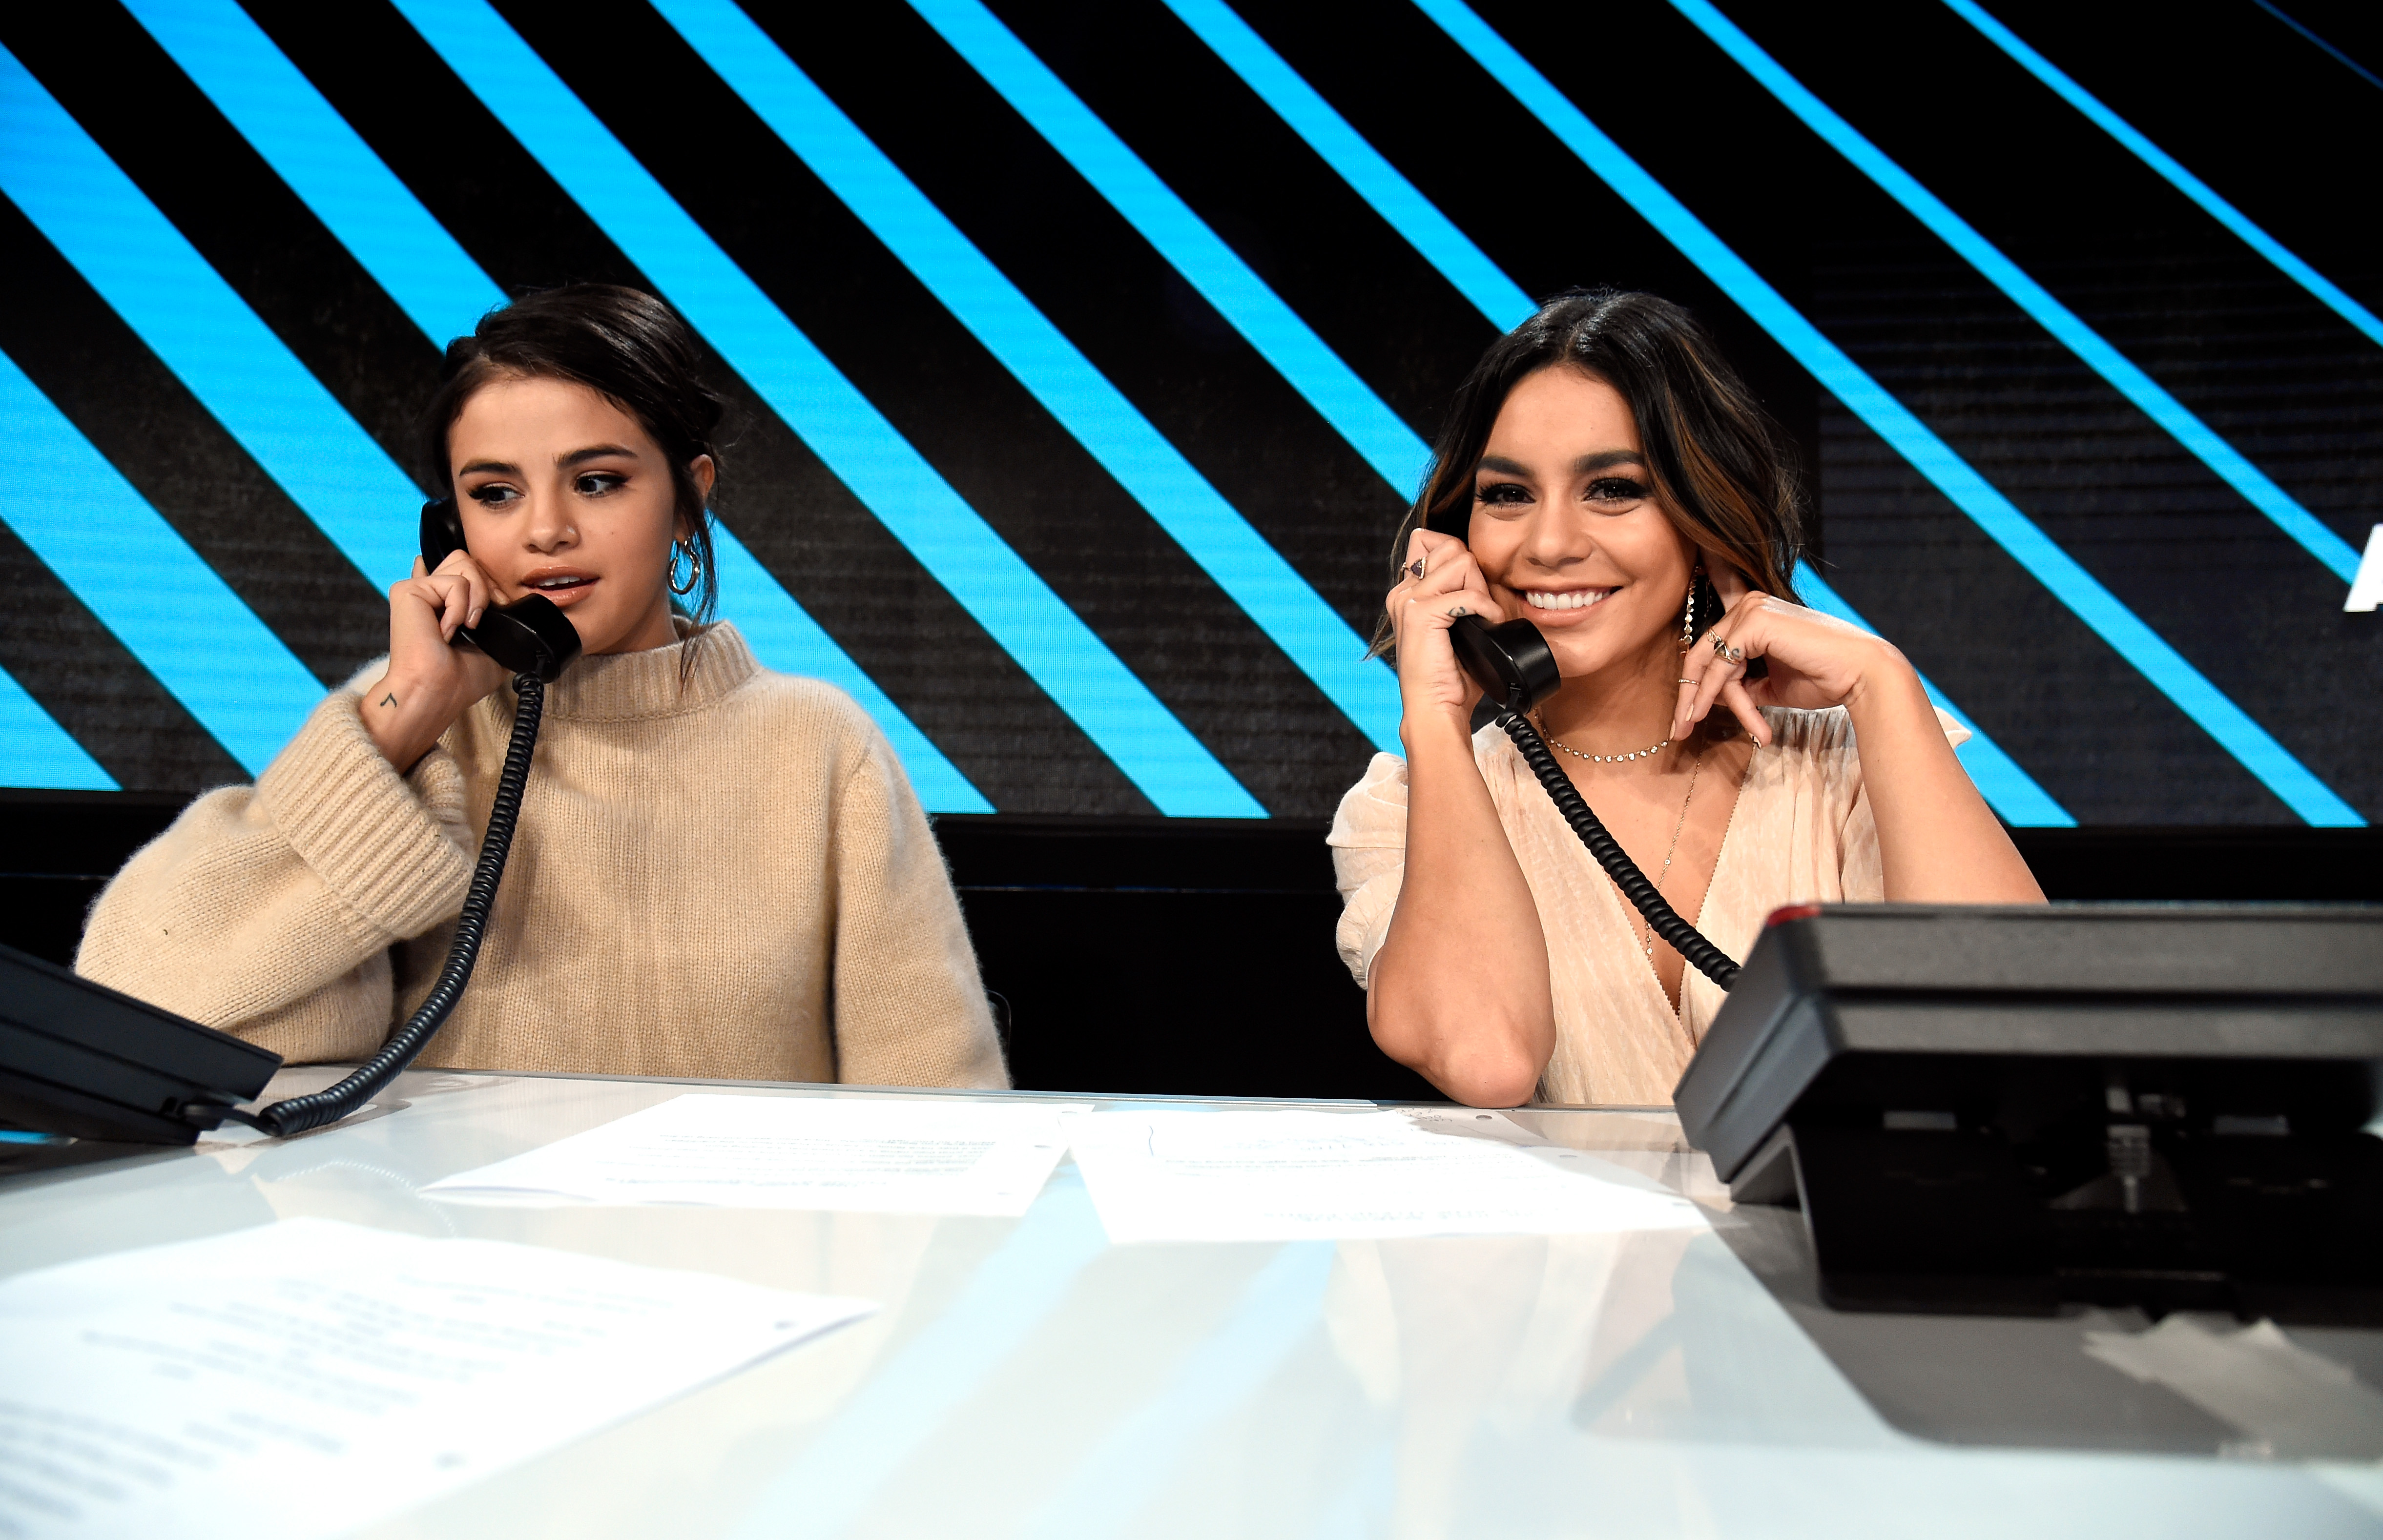 LOS ANGELES, CA - OCTOBER 14:  In this handout photo provided by One Voice: Somos Live!, Selena Gomez and Vanessa Hudgens participate in the phone bank onstage during  One Voice: Somos Live! A Concert For Disaster Relief  at the Universal Studios Lot on October 14, 2017 in Los Angeles, California.  (Photo by Kevin Mazur/One Voice: Somos Live!/Getty Images)